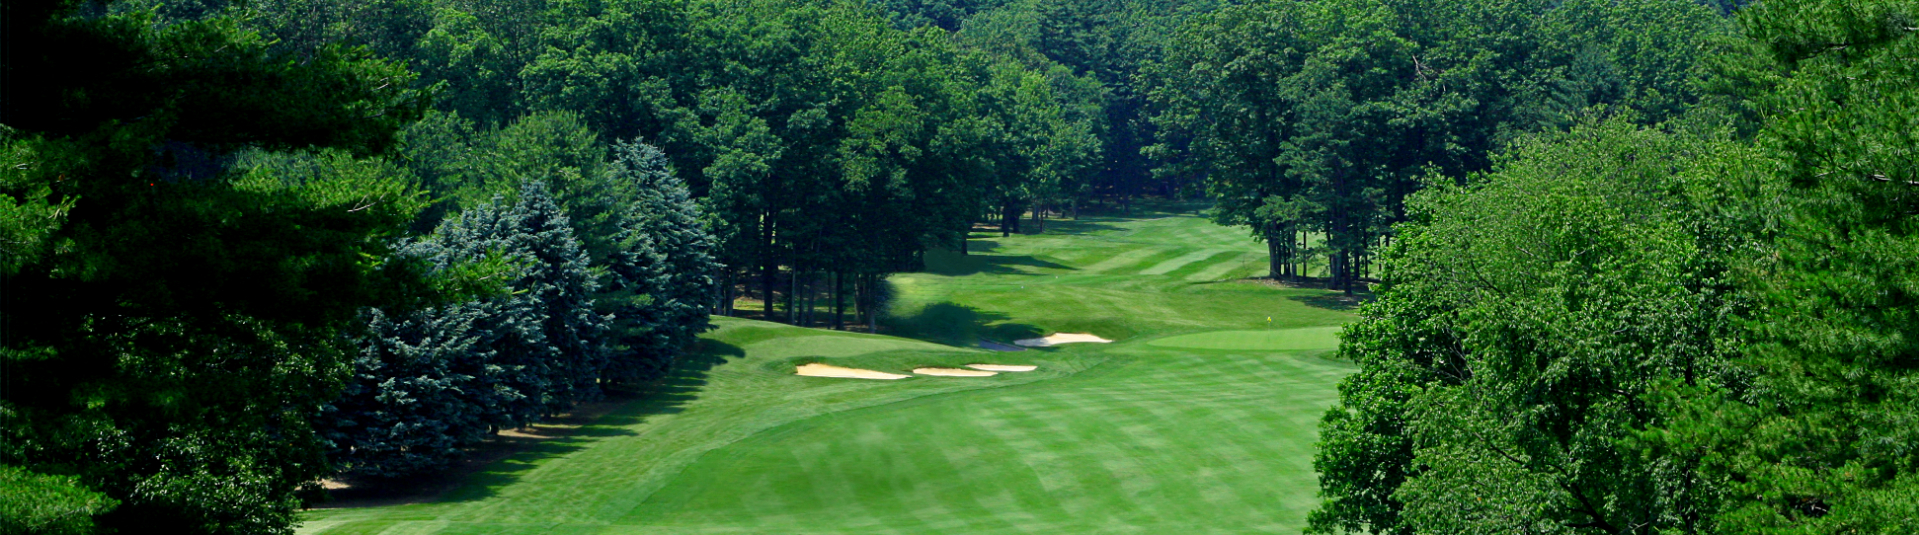 View down the fairway at Toftrees Golf Resort